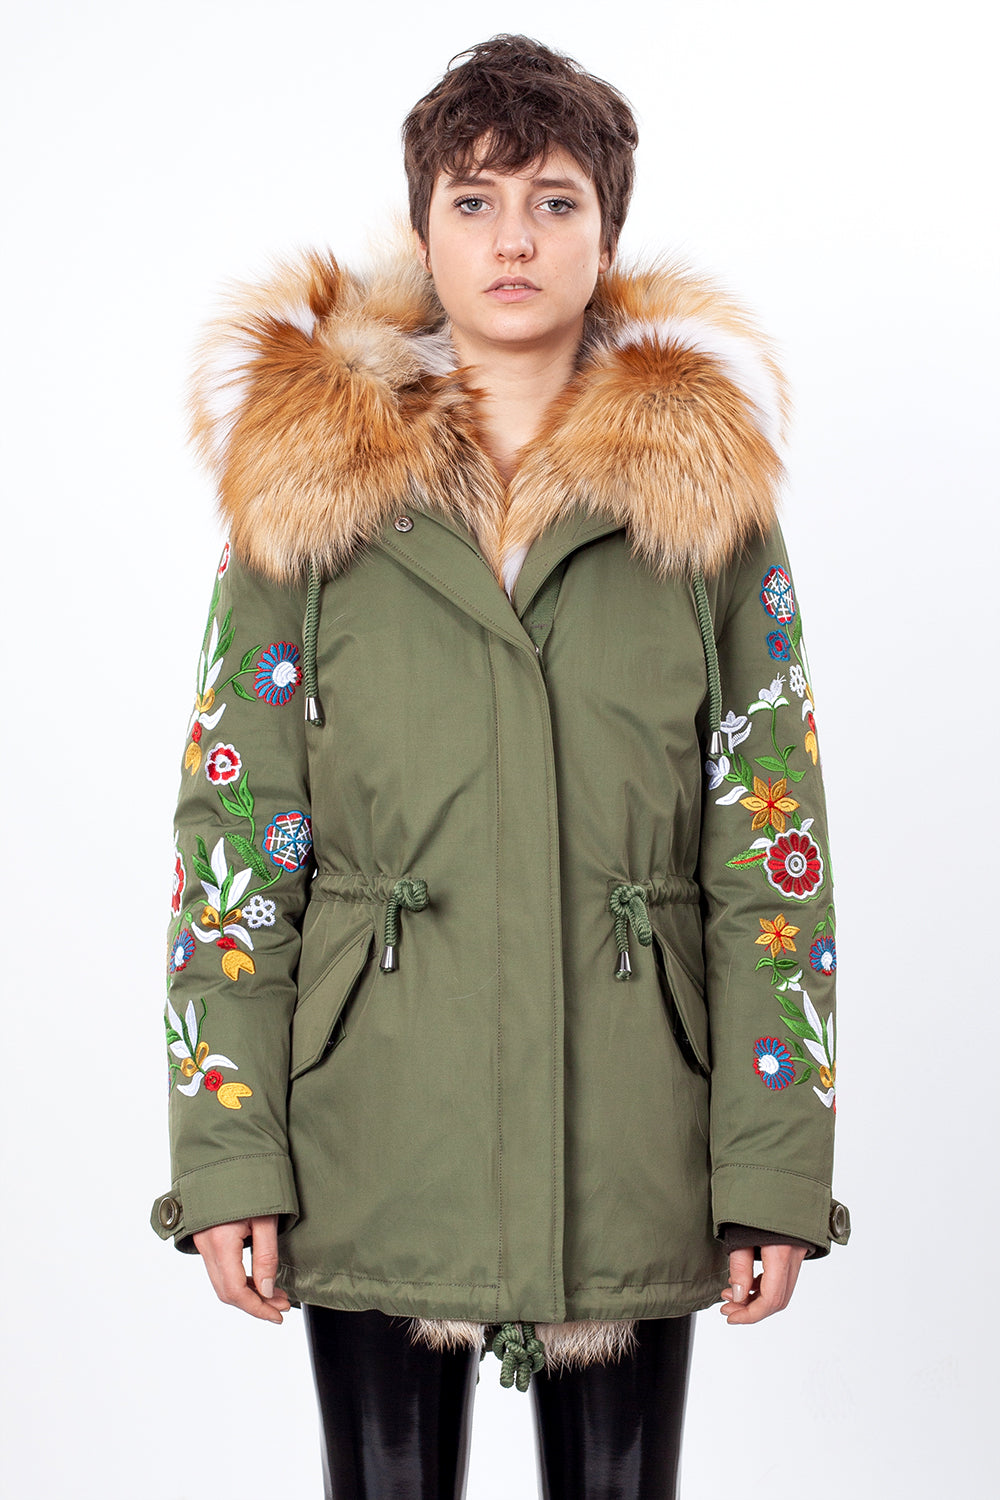 Green Midi Parka Main Fabric is Waterproof / Raincoat Fabric With Gold Fox Mixed Blue Fox